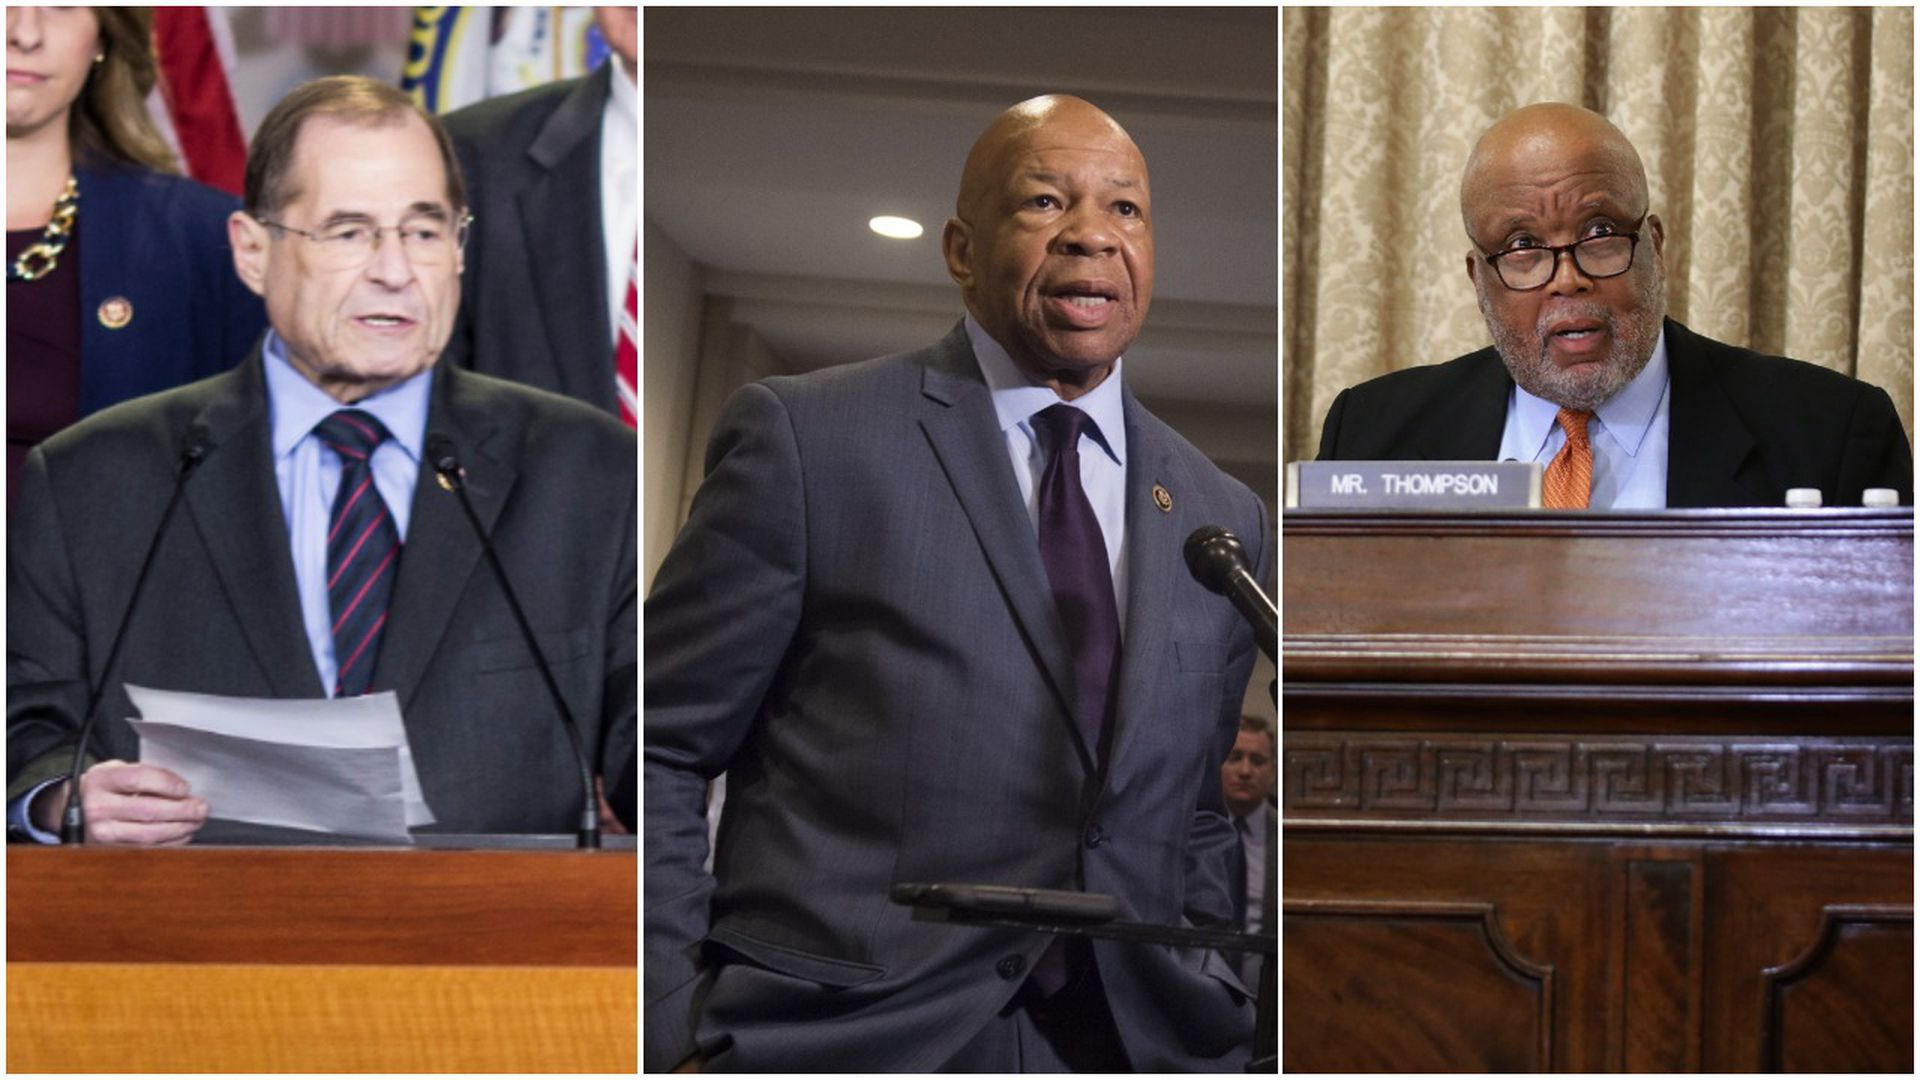 House Committee on the Judiciary Chair Jerry Nadler, House Committee on Oversight and Reform Chair Elijah Cummings and House Committee on Homeland Security Bennie Thompson.